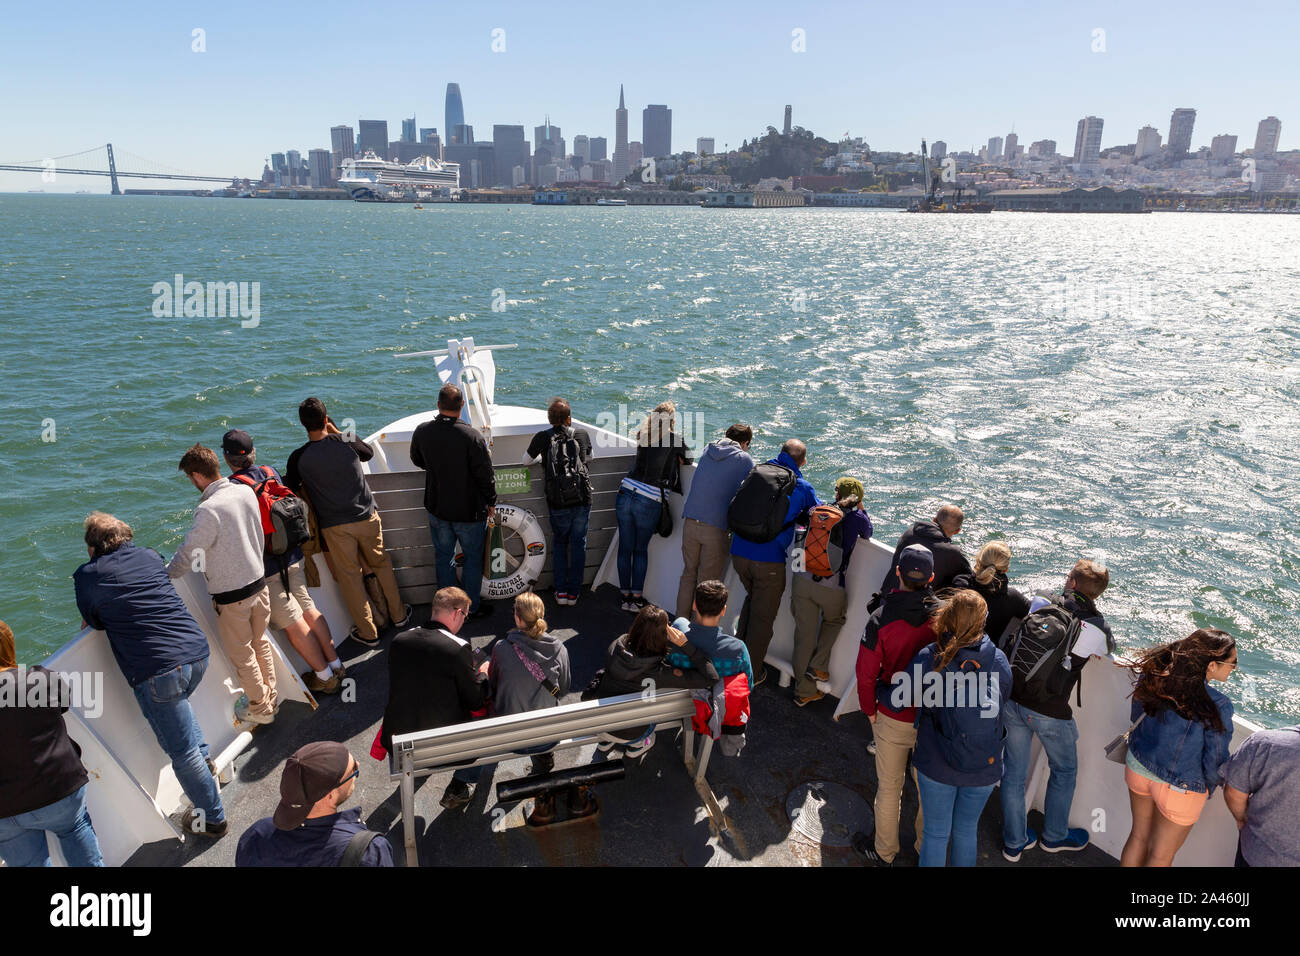 SAN FRANCISCO, USA - OCTOBER  2, 2019 : People on the Alcatraz tour ship as it sails across the  San Francisco bay with views of the city skyline. Stock Photo